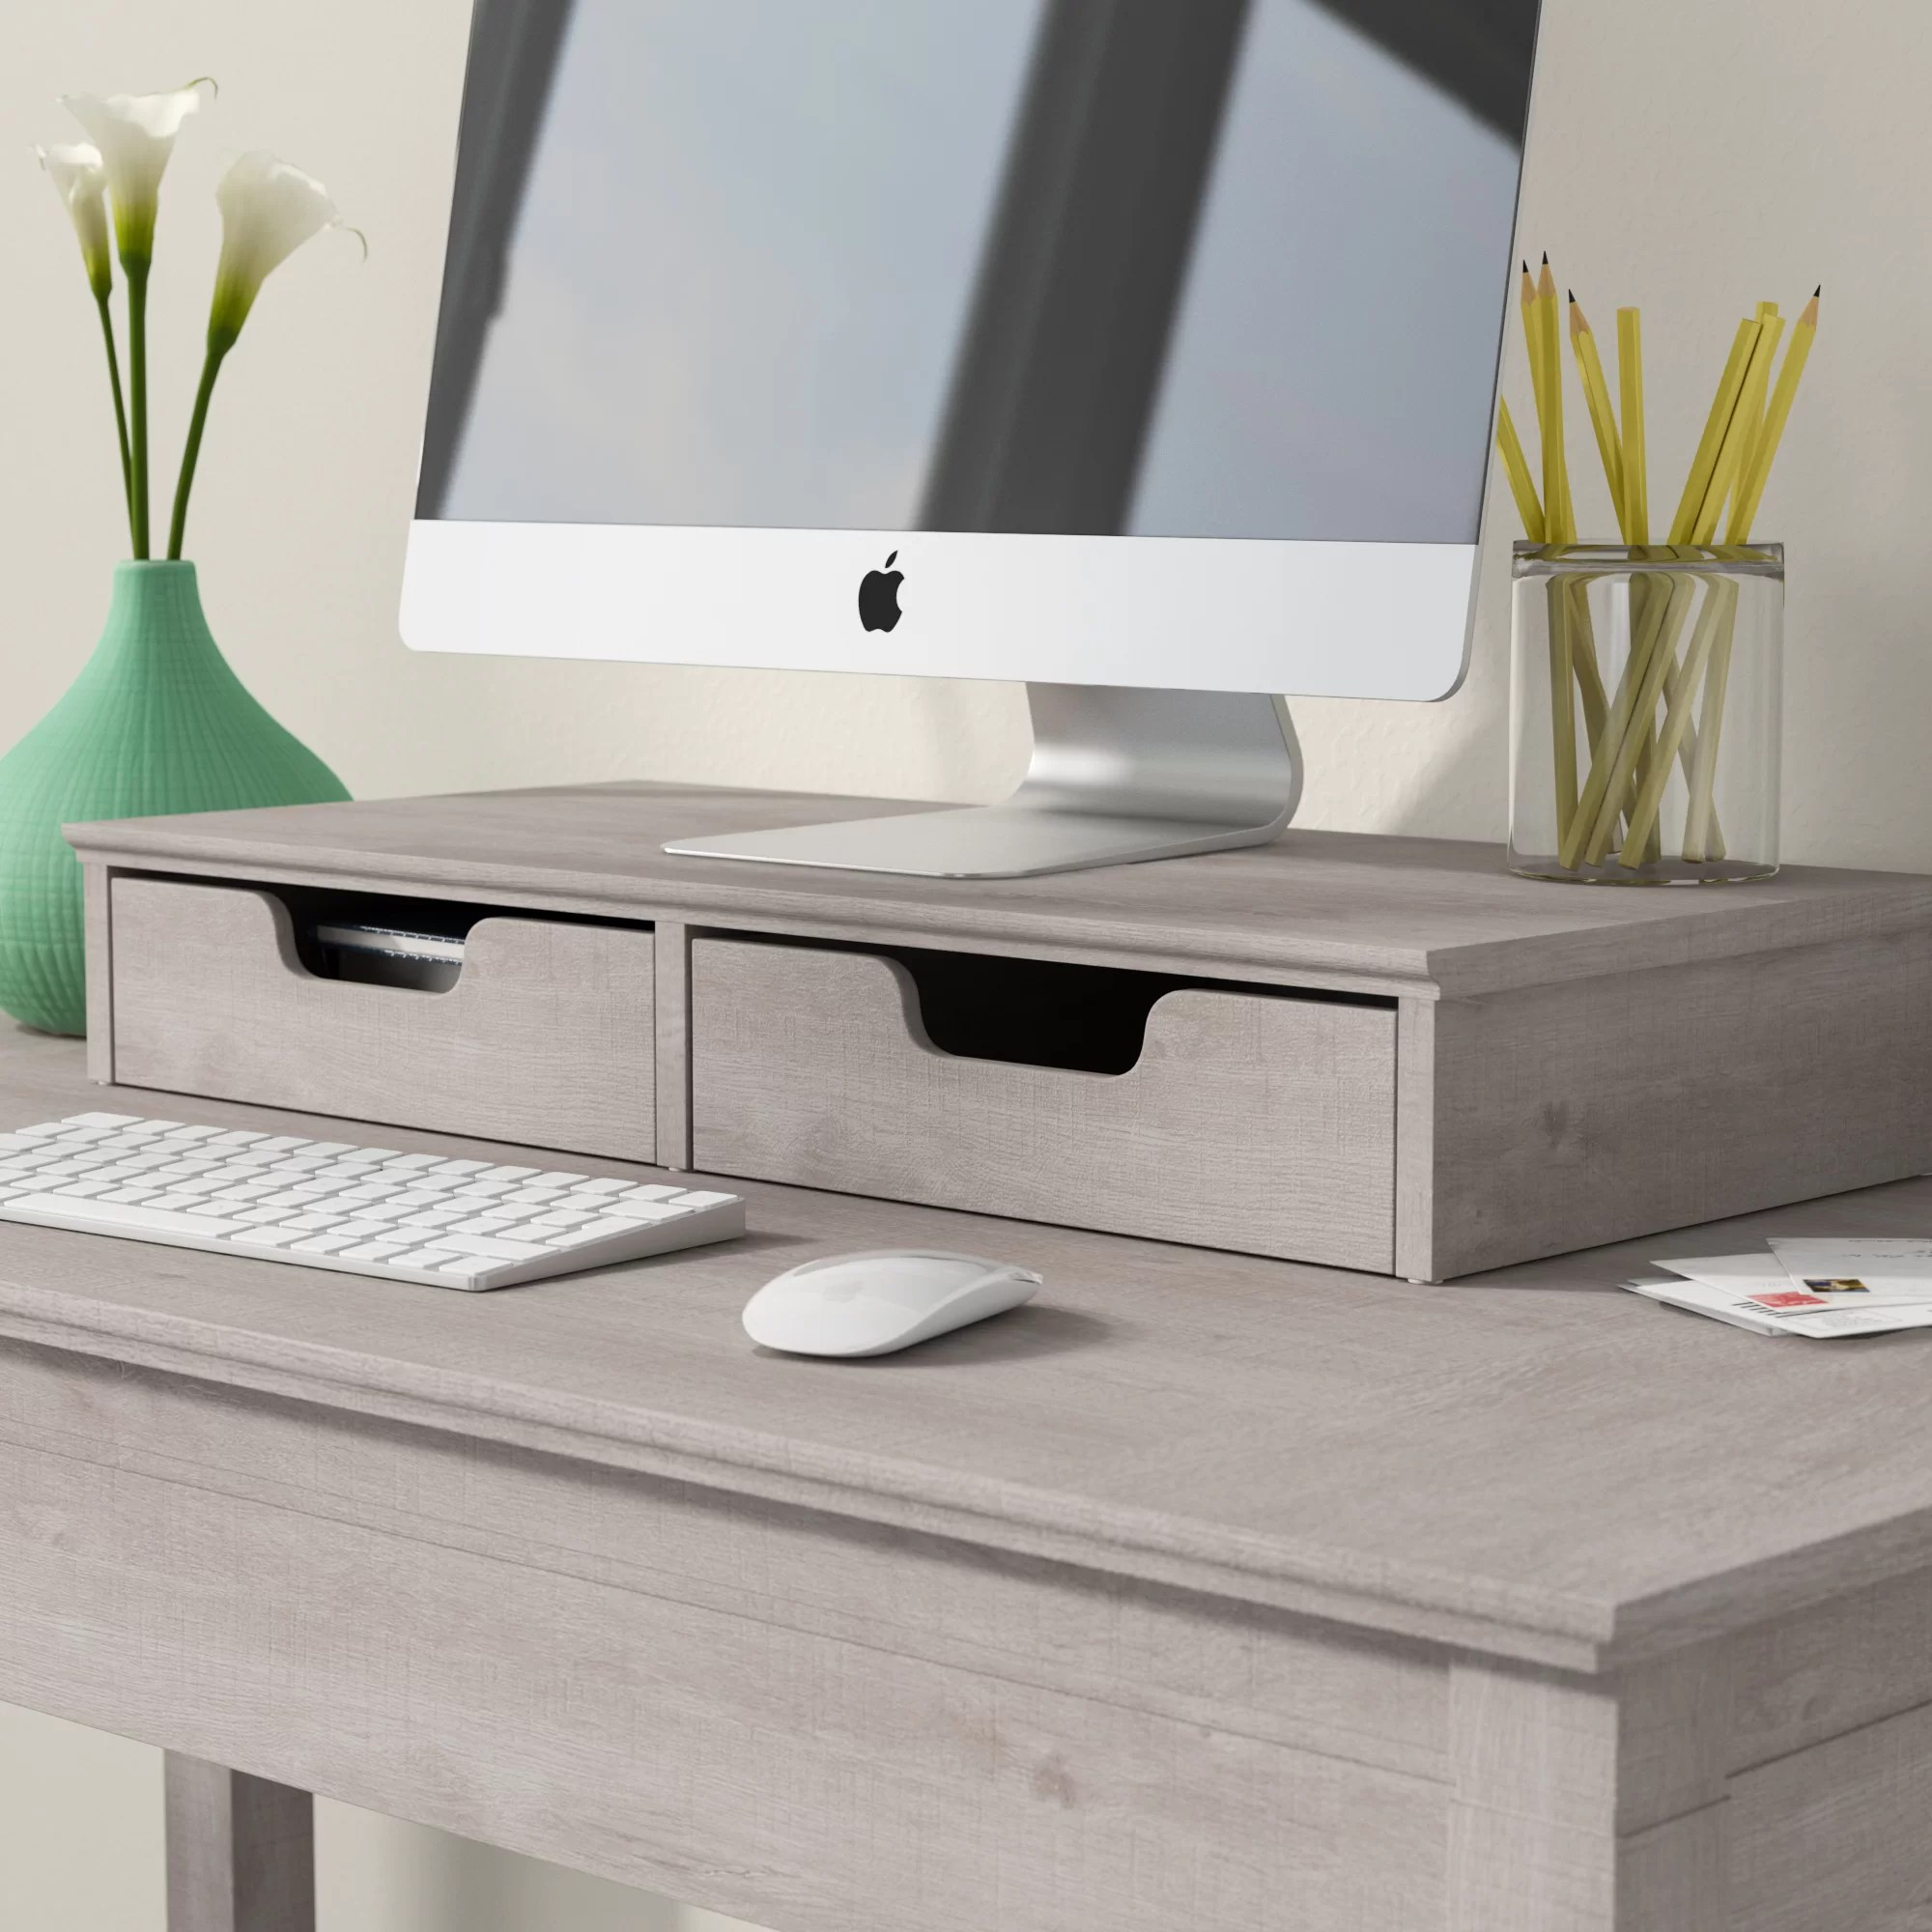 Desk Top Drawers Oridatown Desktop Organizer With Drawers